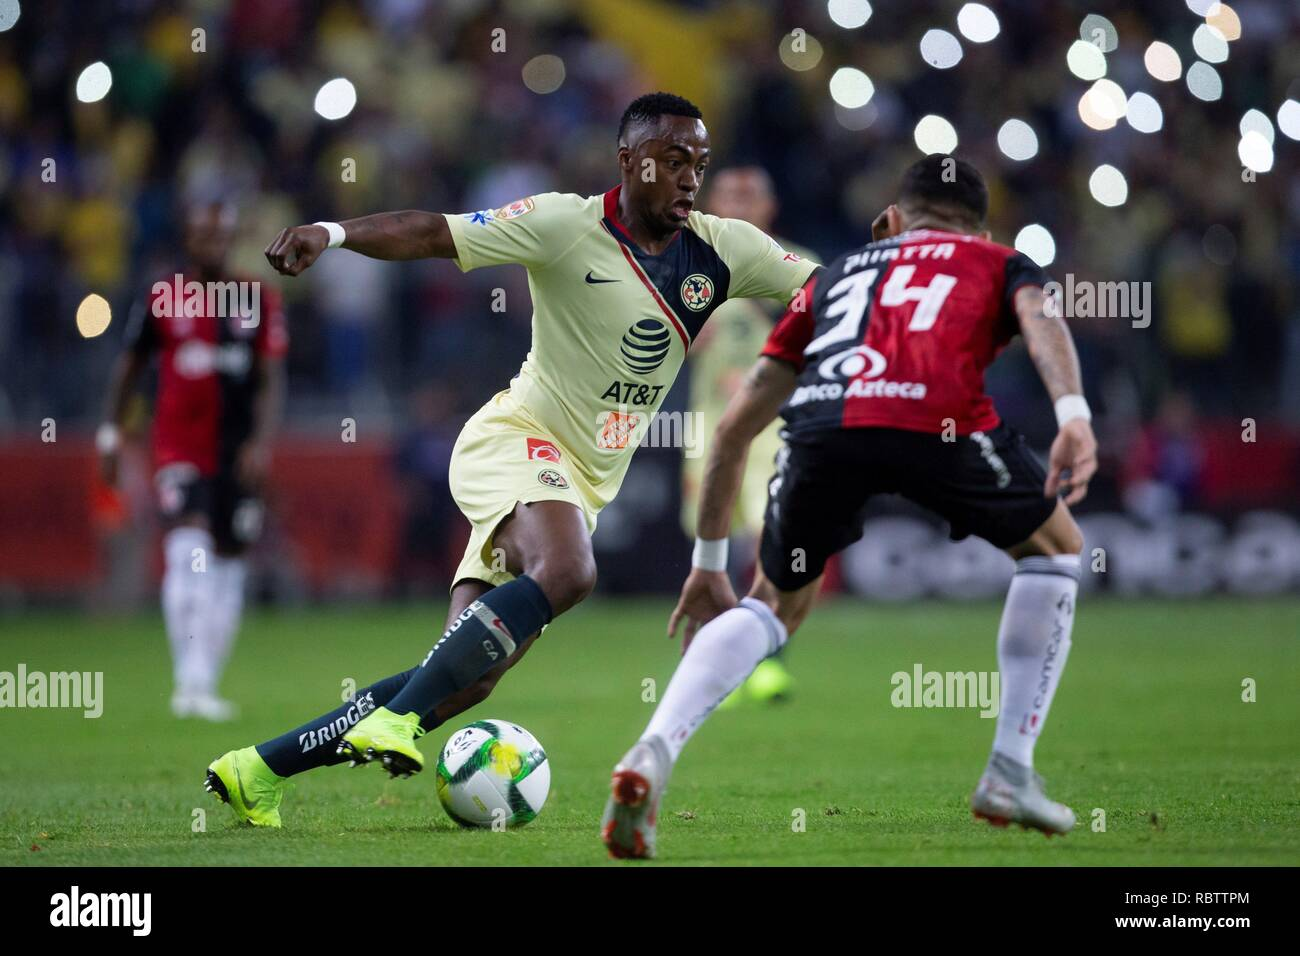 Guadalajara, Mexico. 12th Jan, 2019. Irving Zurita (R) of Atlas vies for the ball against Alex Ibarra (L) of America, during the game corresponding to day 2 of the Mexican soccer tournament, held at the Jalisco Stadium, in the city of Guadalajara, Mexico, 11 January 2019. EFE/ Francisco Guasco Credit: EFE News Agency/Alamy Live News - Stock Image